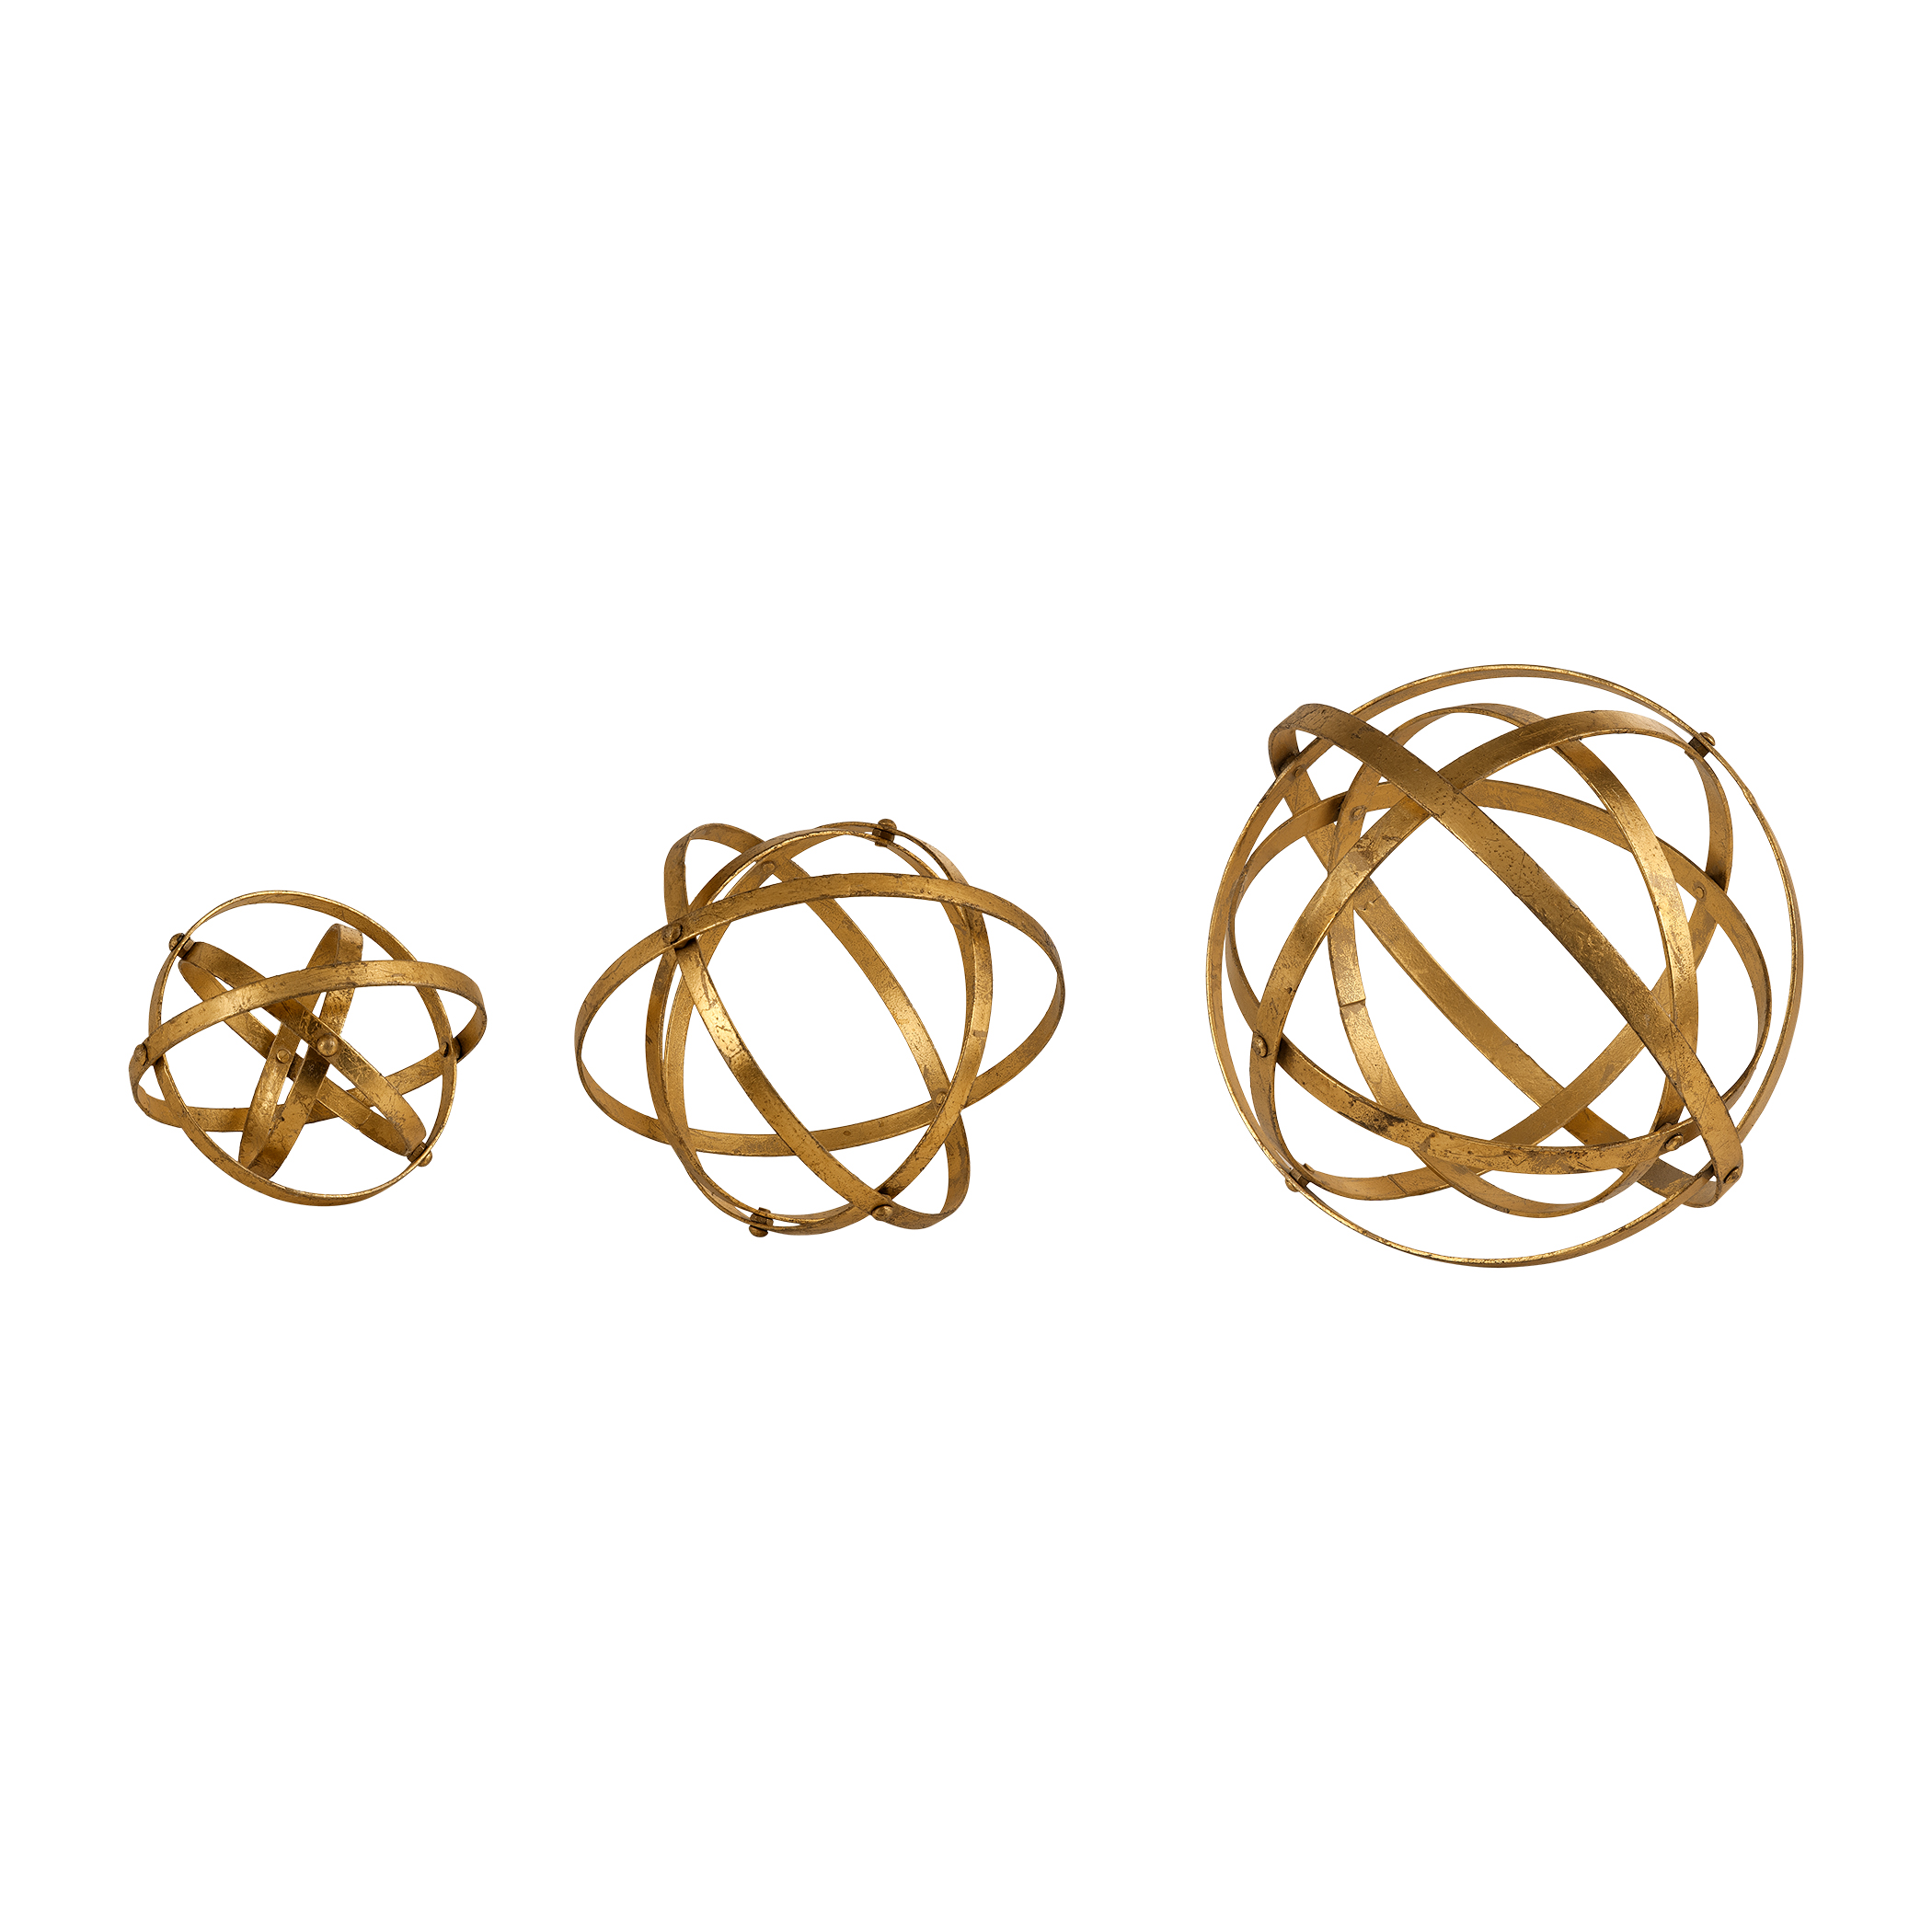 Accessories - Statues and Figurines Stetson Gold Spheres, S/3 by Uttermost at Mueller Furniture